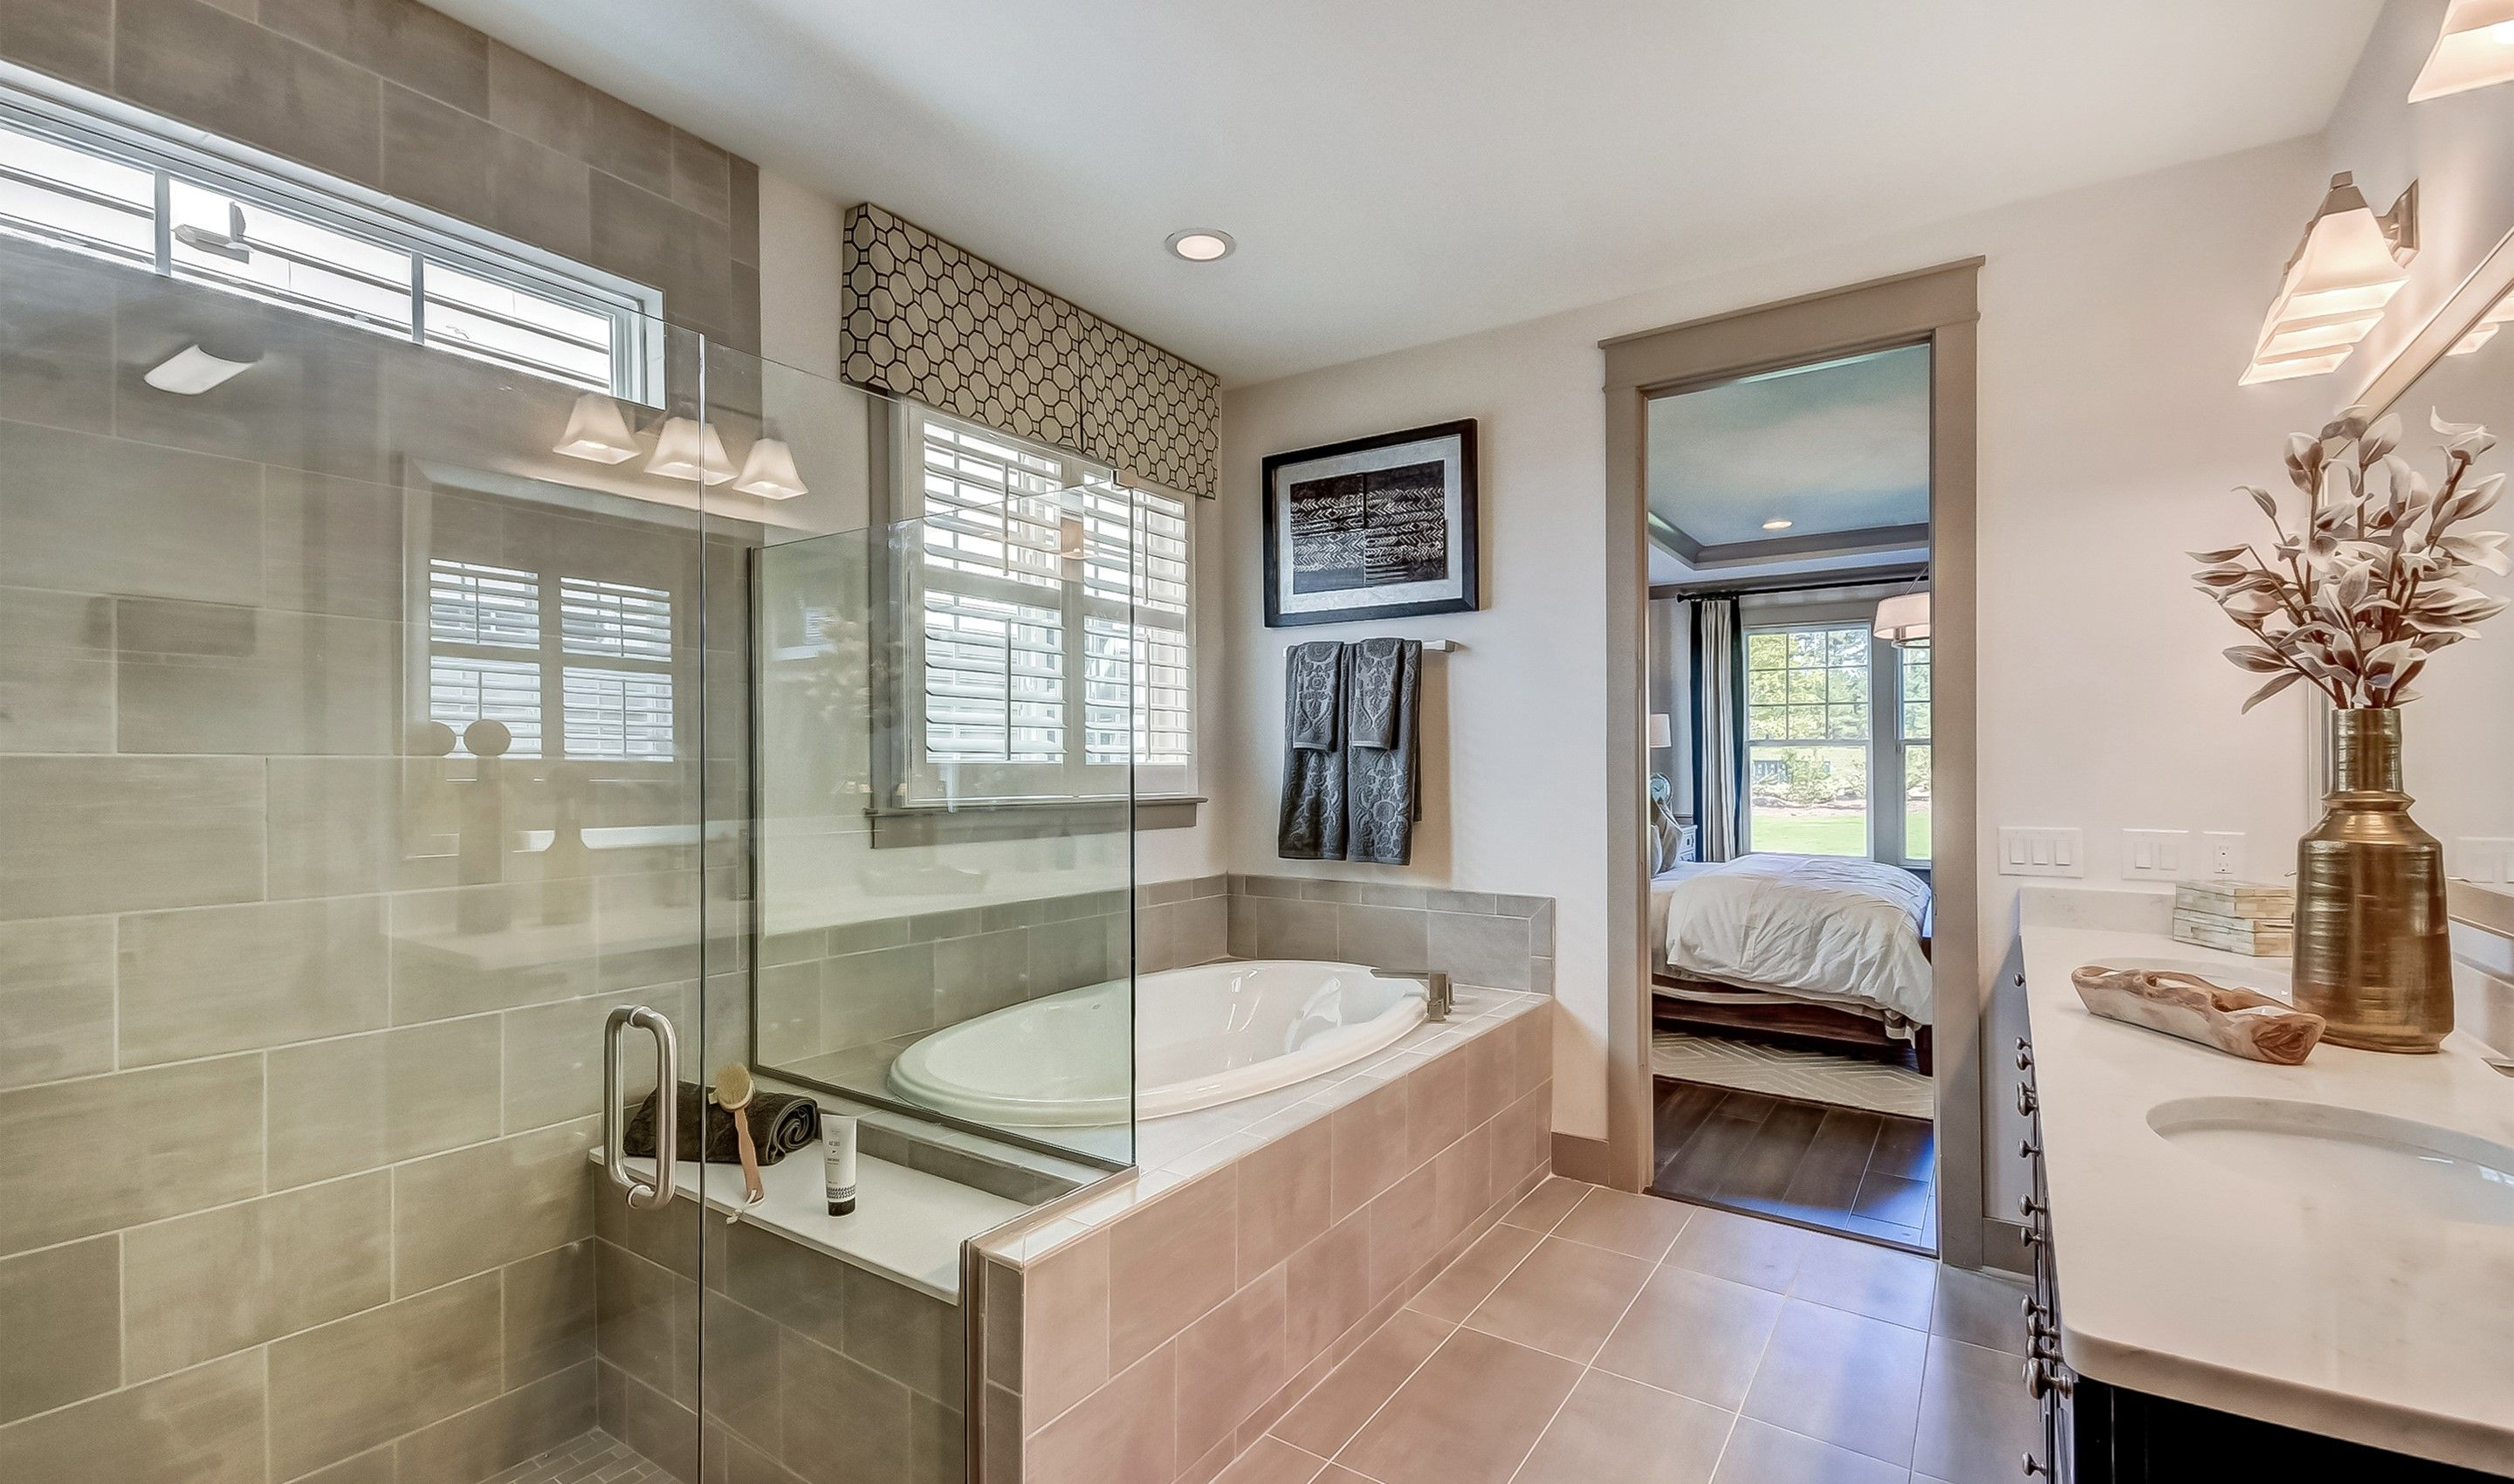 Bathroom featured in the Marseille By K. Hovnanian's® Four Seasons in Charleston, SC